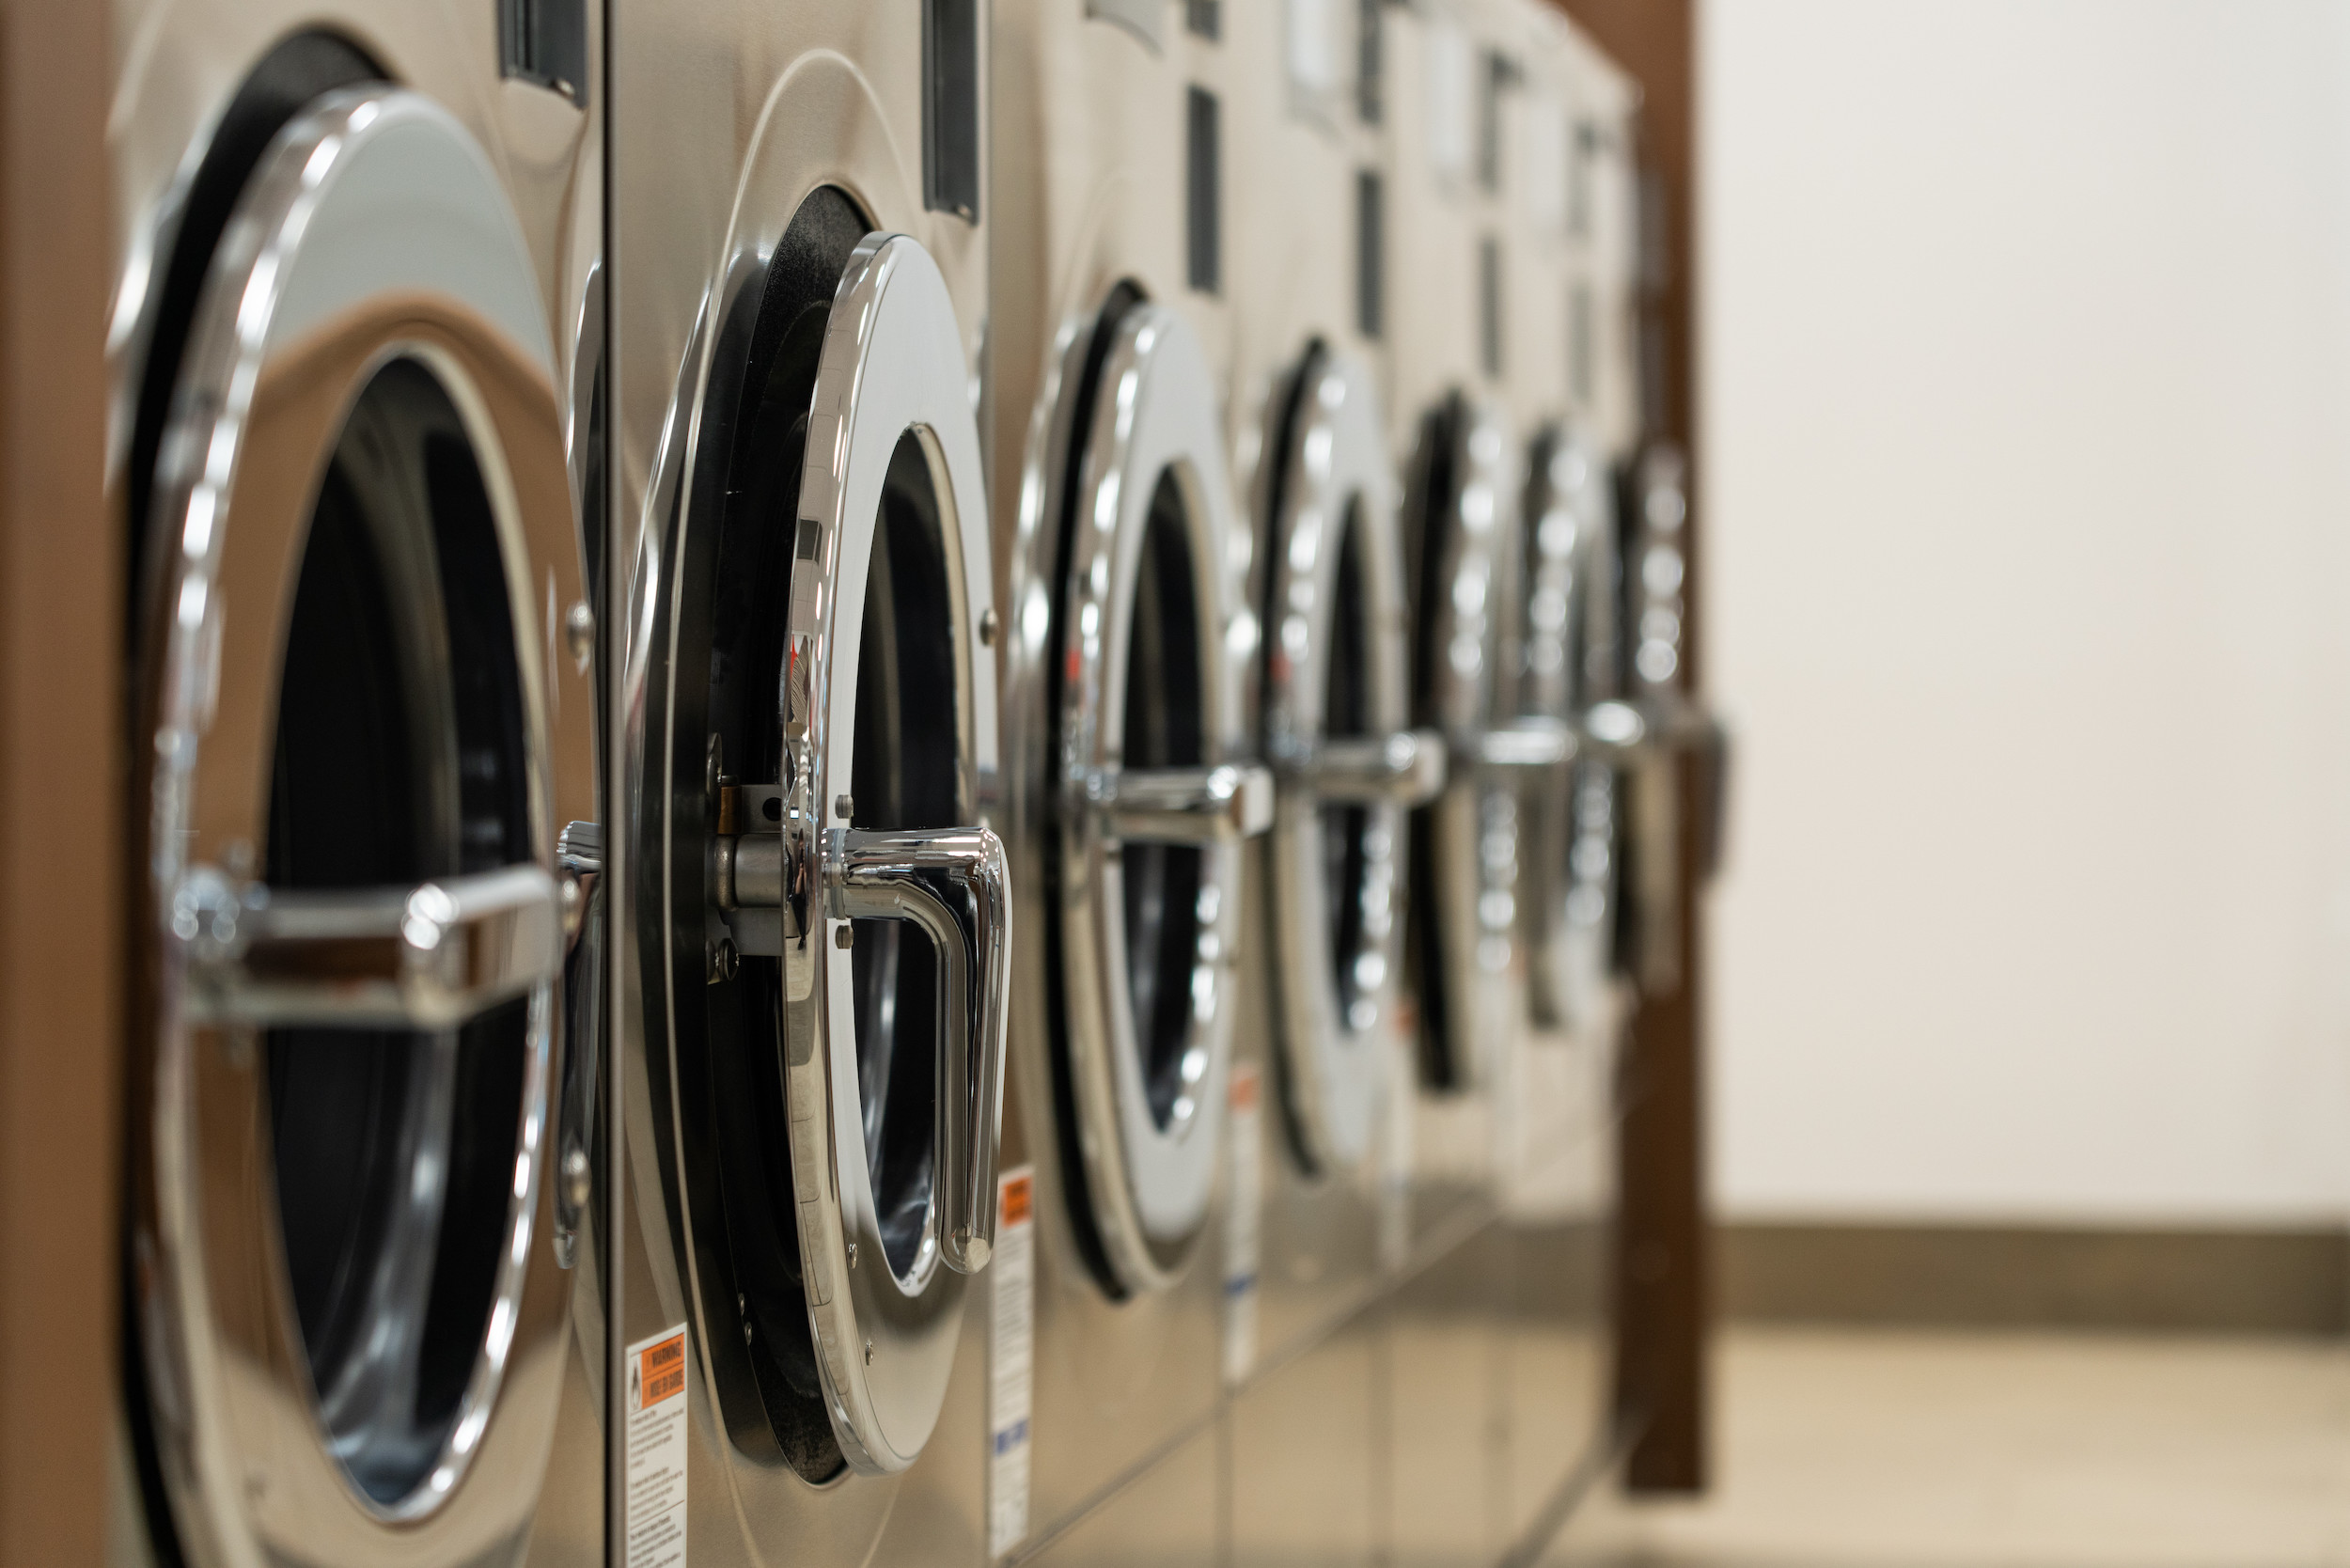 Laundry adapts to doing business in post-COVID-19 climate